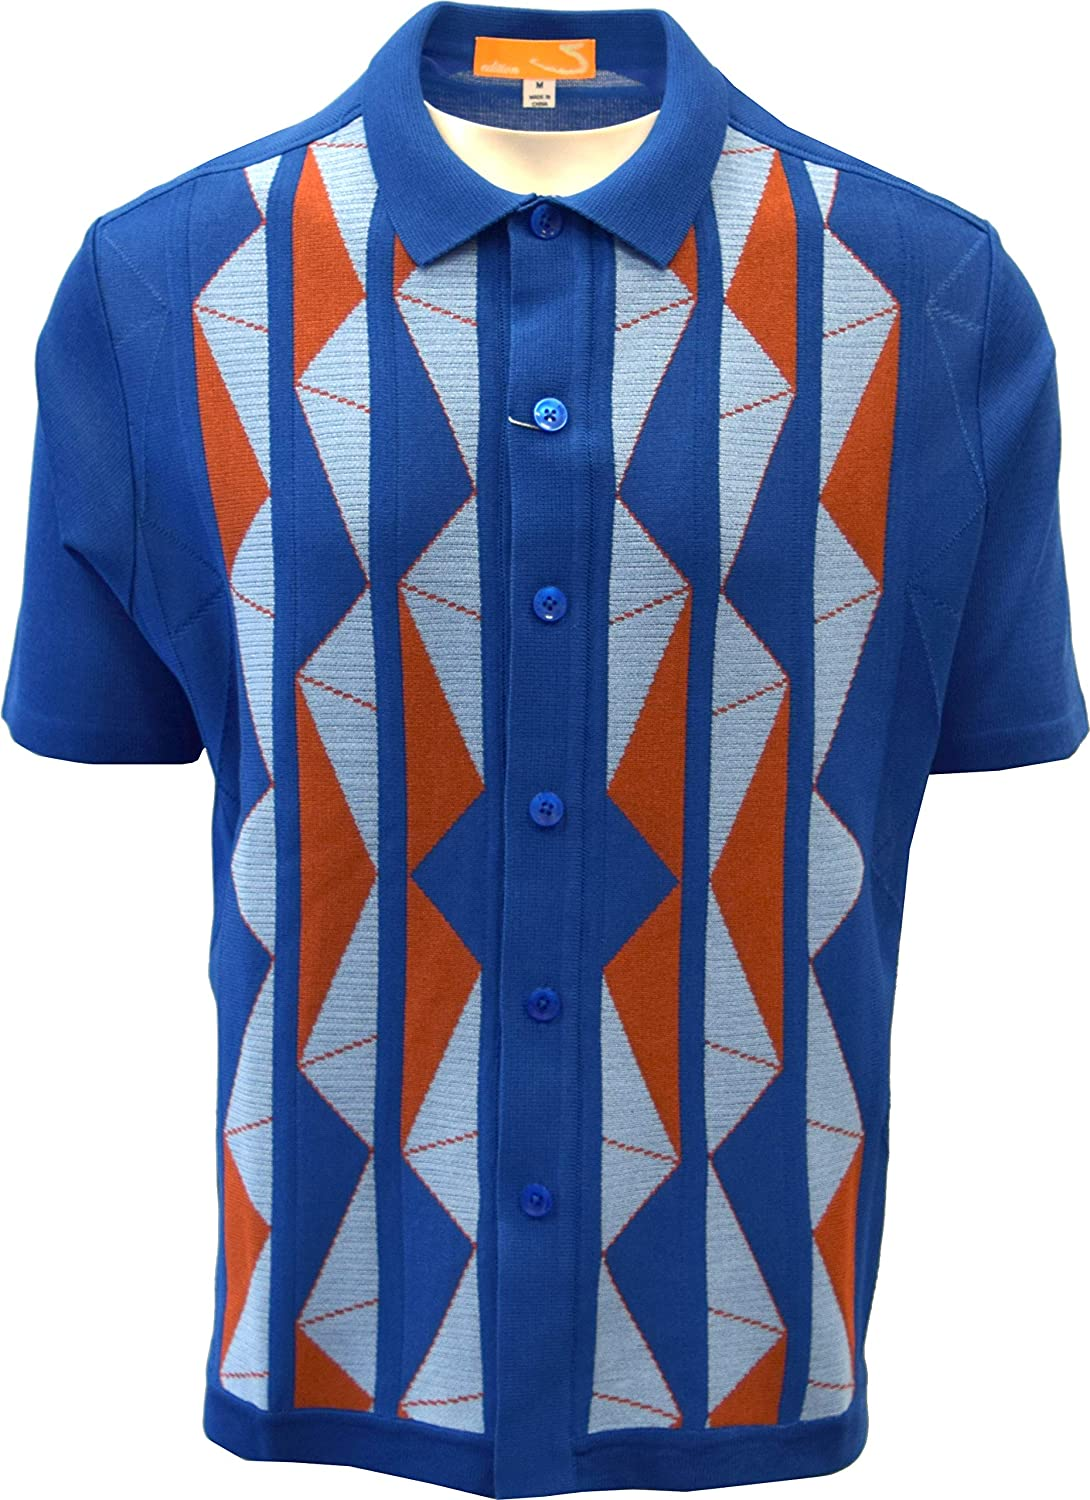 Mens Vintage Shirts – Casual, Dress, T-shirts, Polos Edition-S Mens Short Sleeve Knit Shirt- California Rockabilly Style Aztec Triangle Design $49.00 AT vintagedancer.com